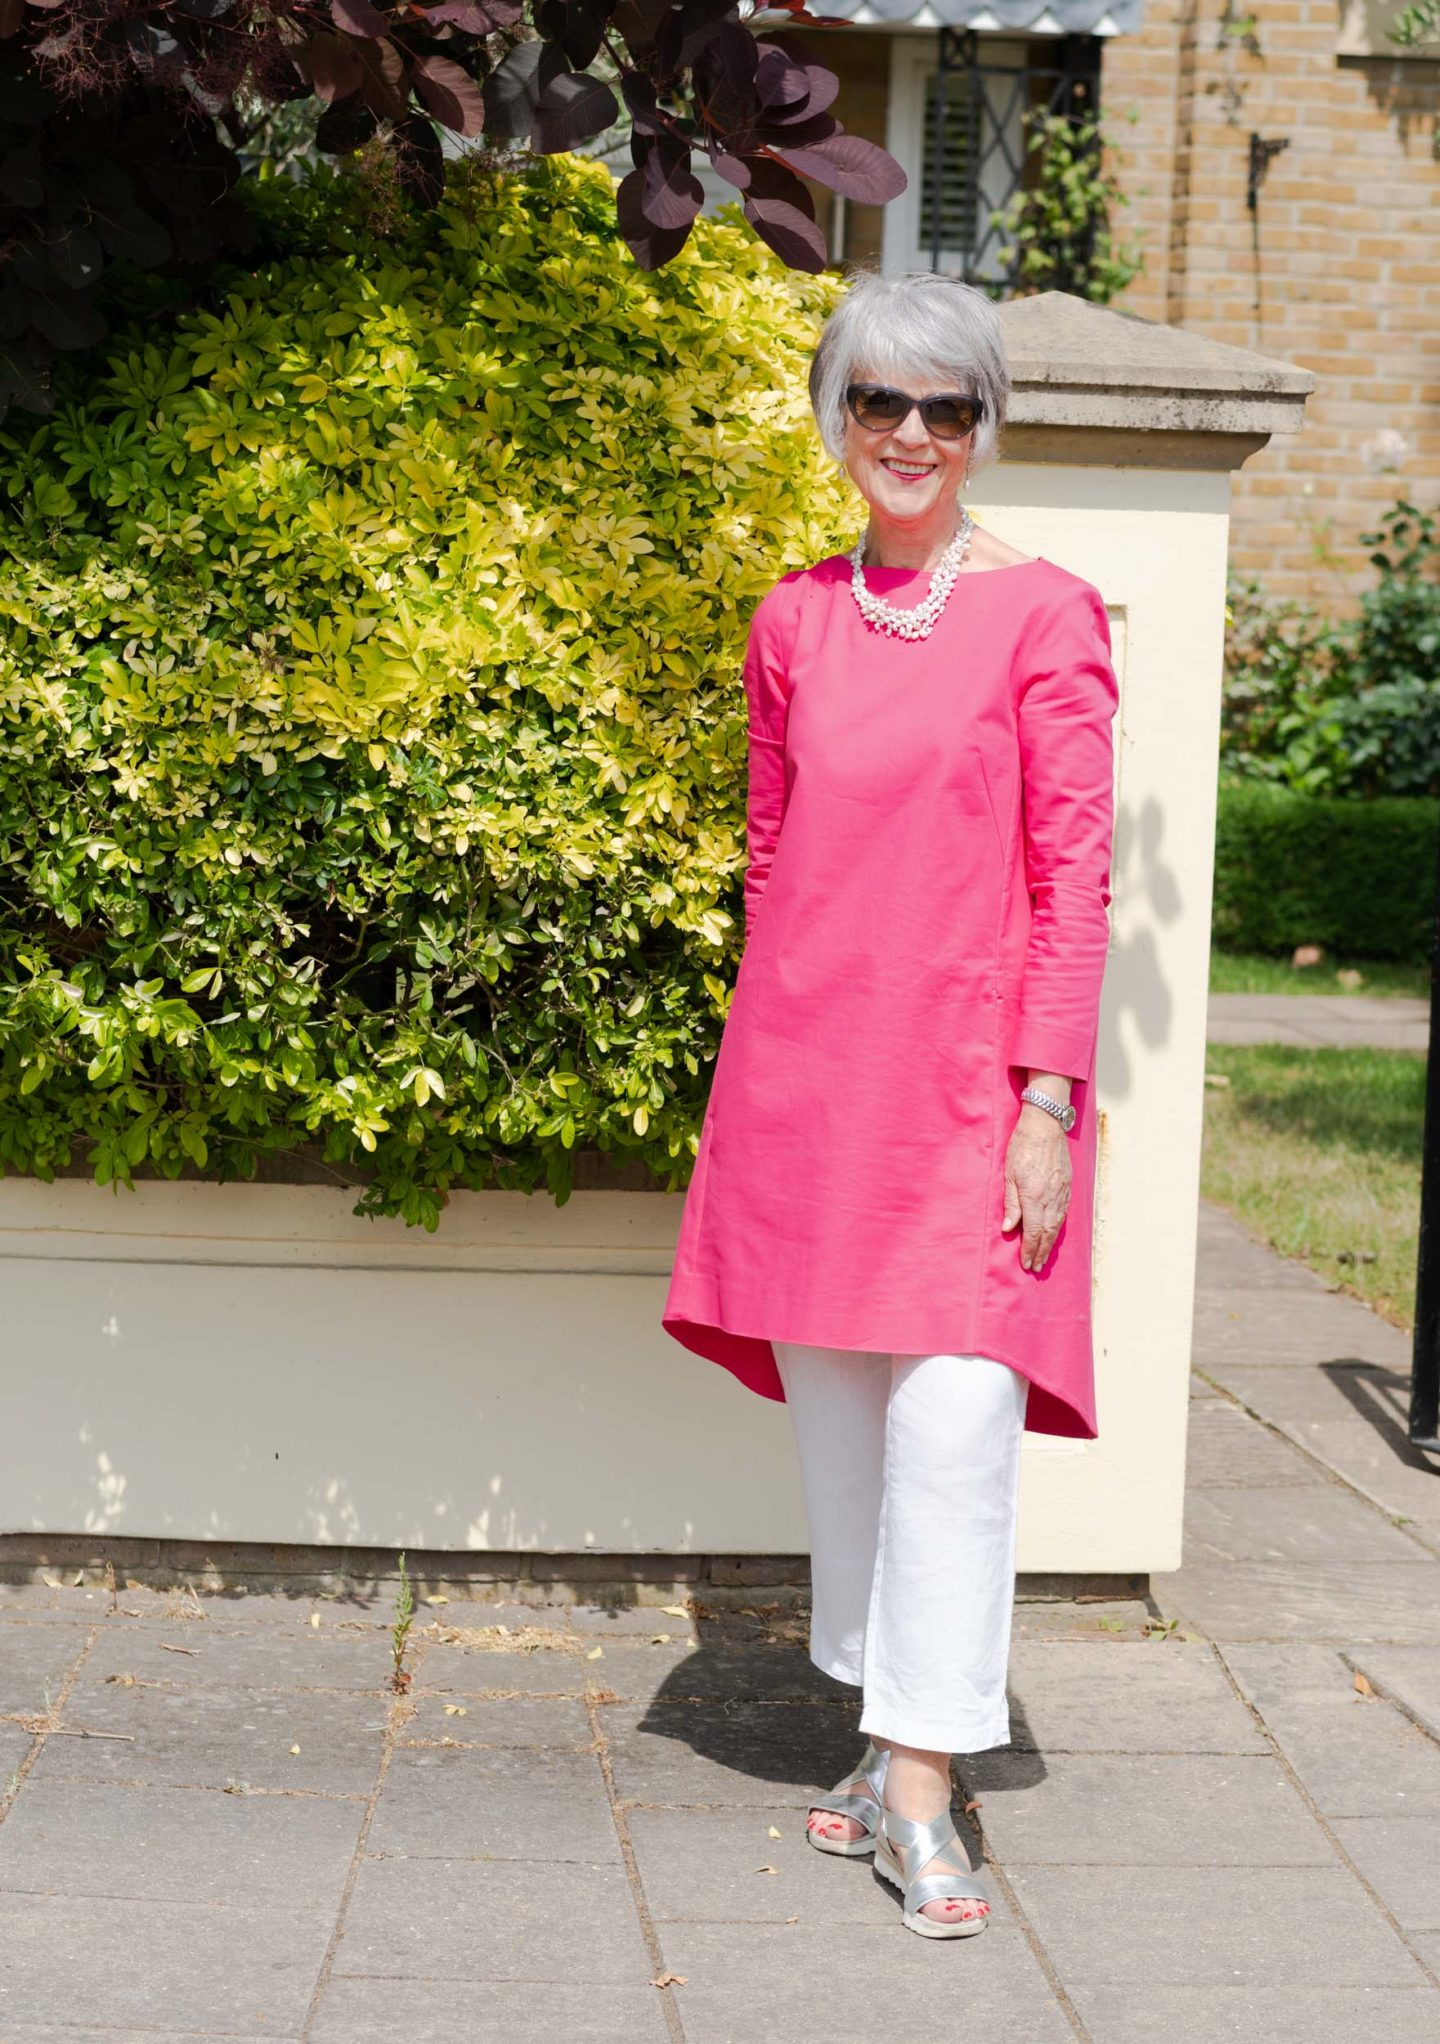 Tunic dress and trousers